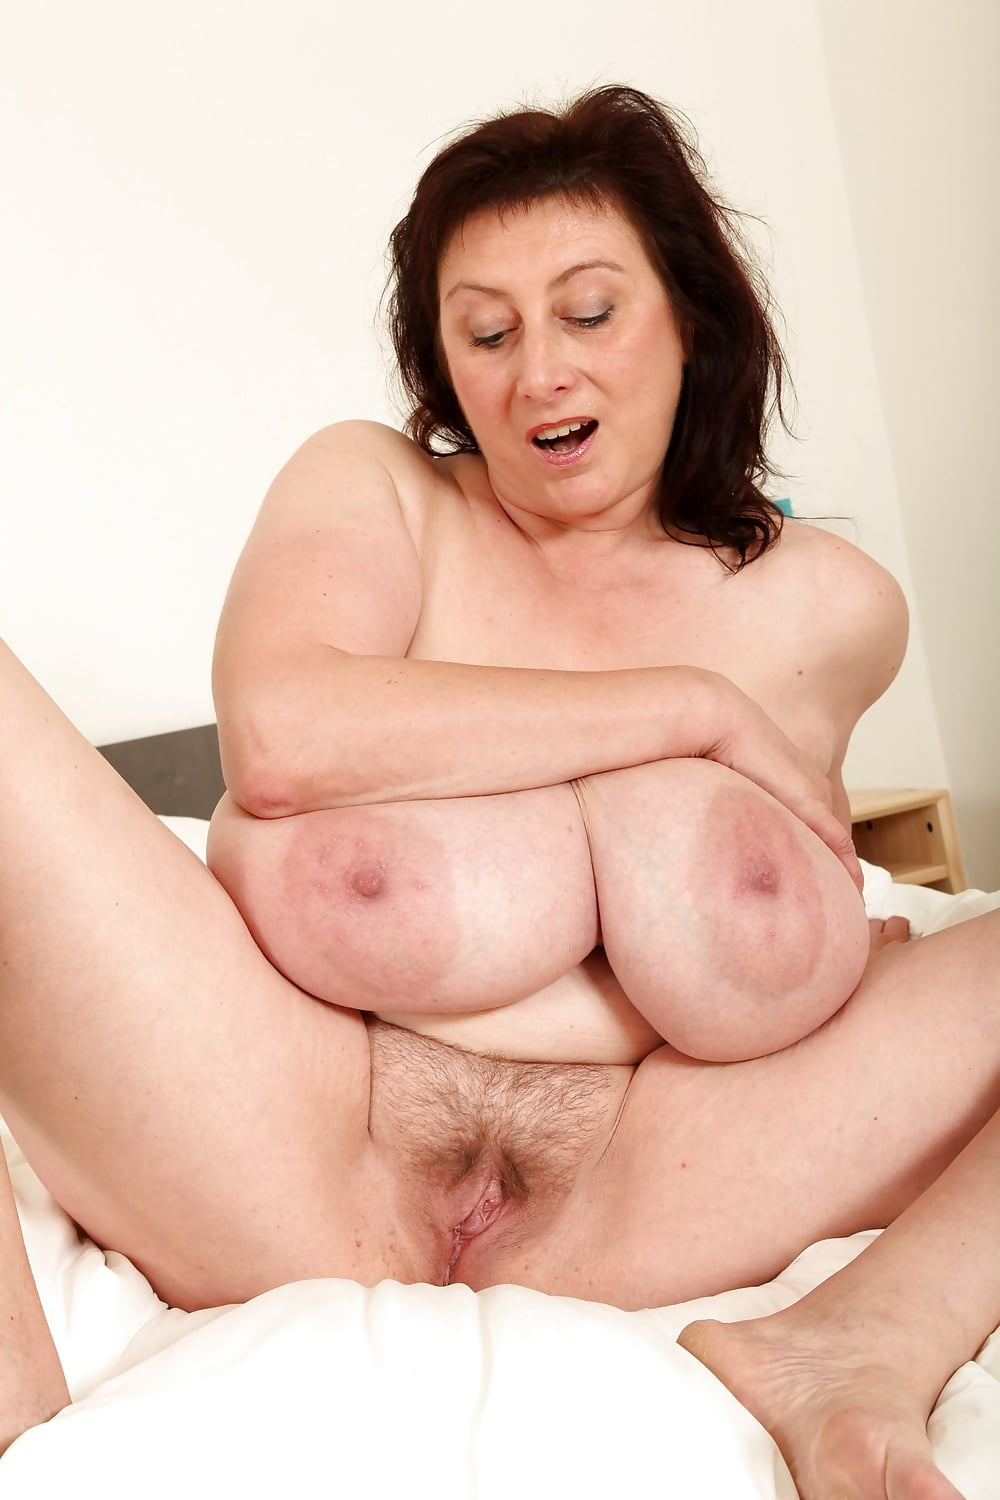 Russian extra small tits gril sex